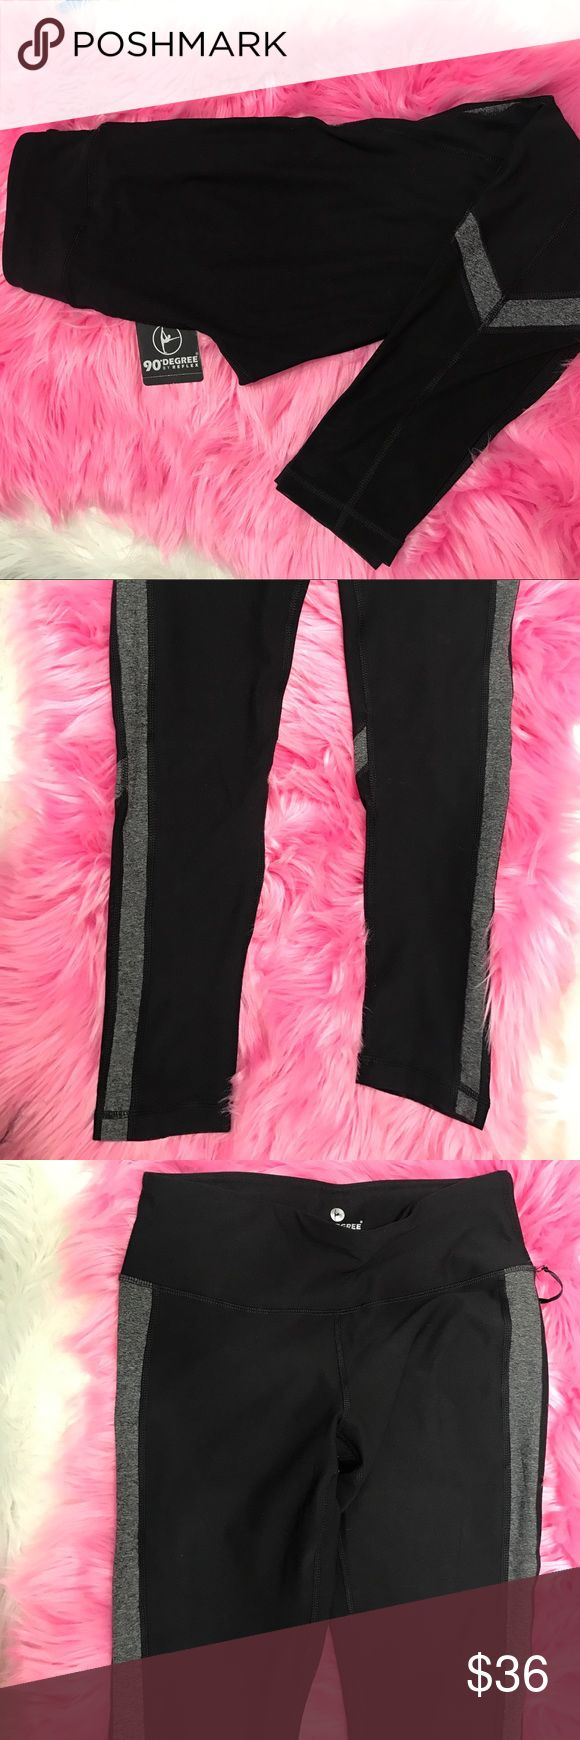 NWT 90 degree by reflex work out leggings Beautiful work out leggings. Black and gray. Brand new. See thru Mesh on lower side of calves in the back. Super stretchy. Super comfy leggings. Not see thru. The best leggings for everyday use. It has moisture wicking technology. Size: medium. Inseam 28 inches 90 Degree By Reflex Pants Leggings